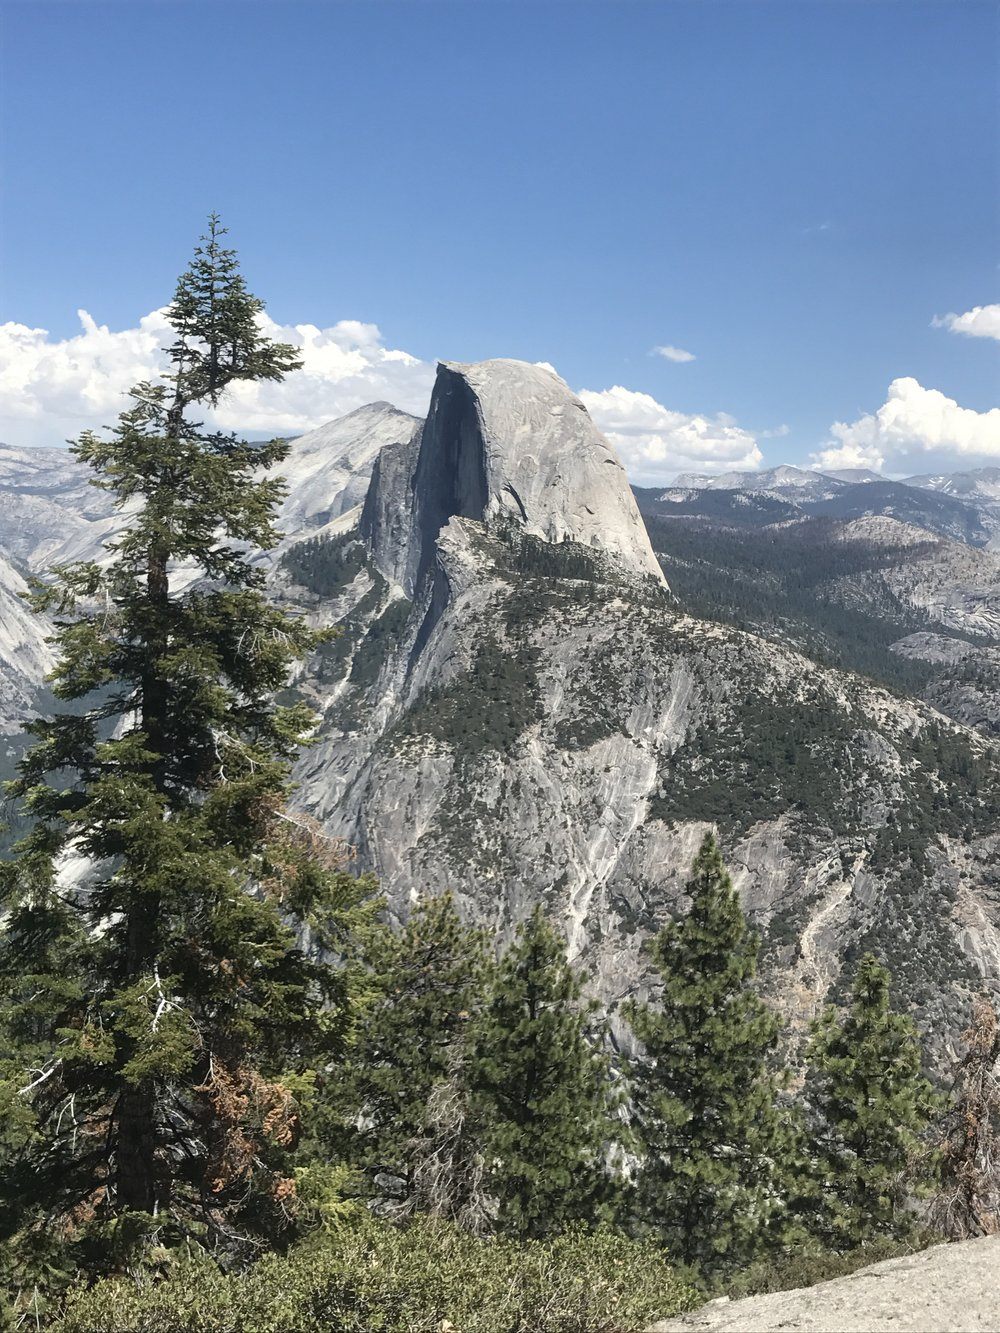 Online outdoor gear markets such as High Sierra Trading Post and  BackCountry.com are great ways to save money on gear 854f9f6c7f8ce